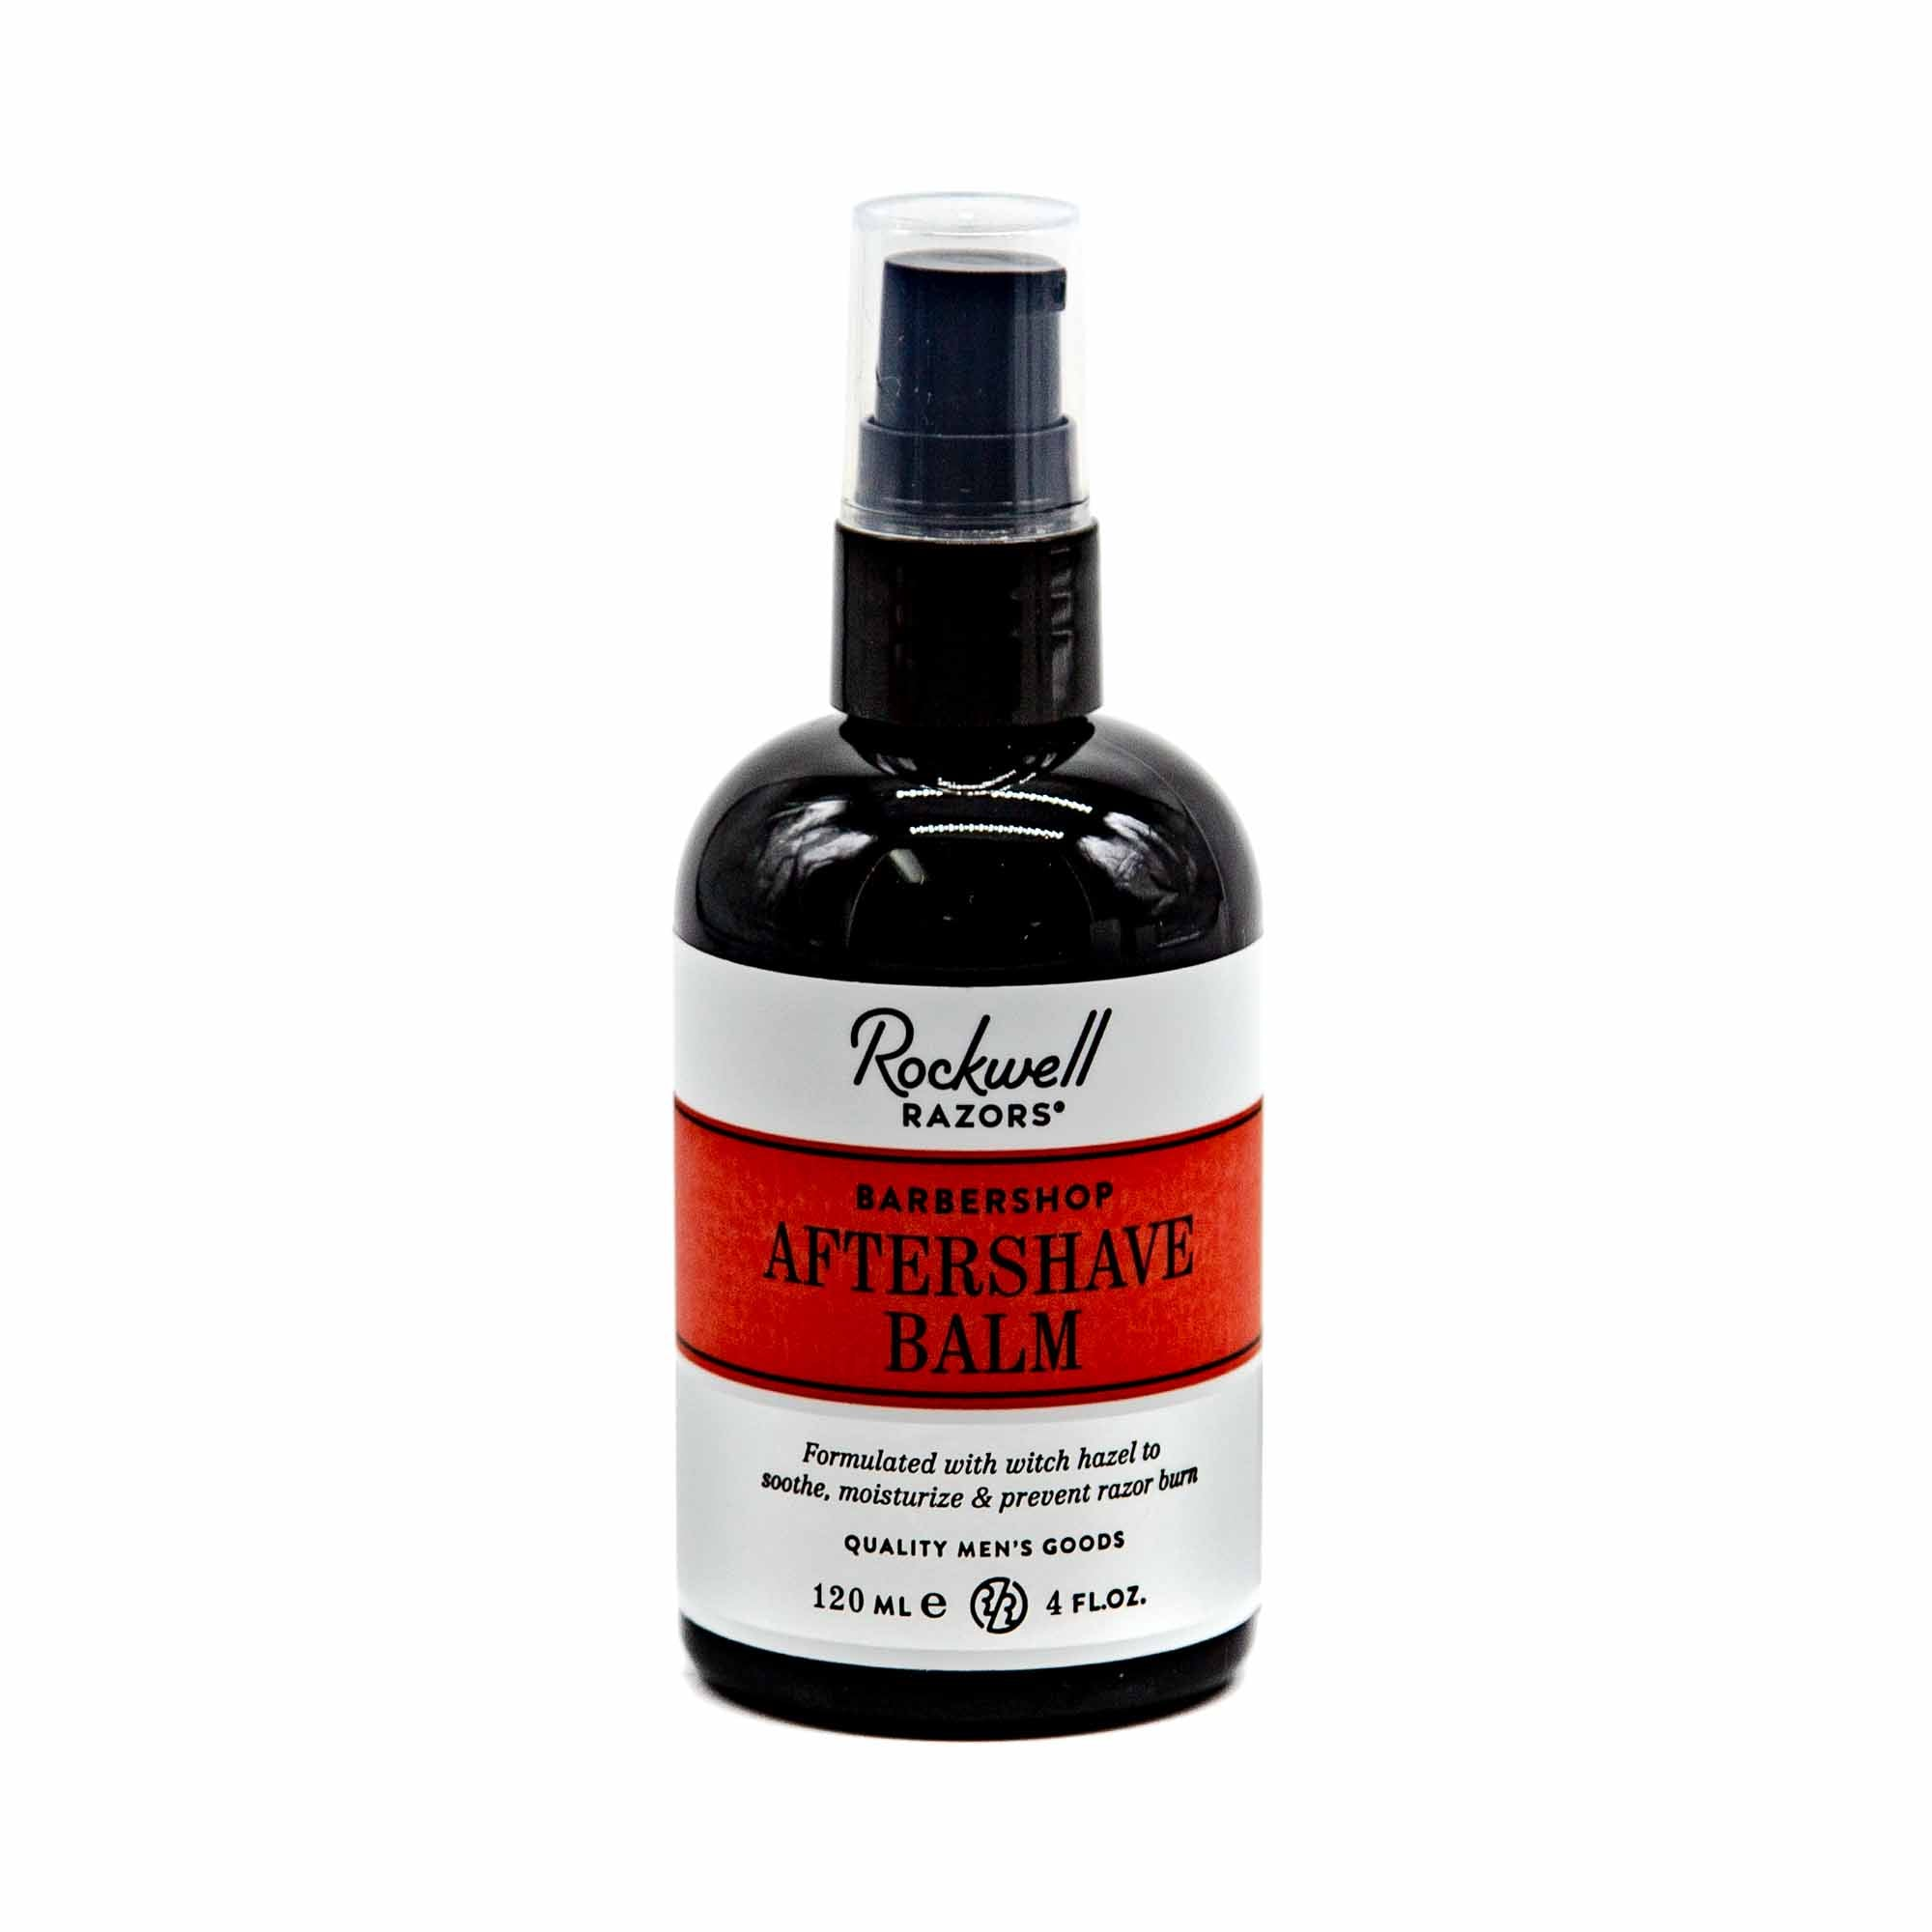 Rockwell Razor Aftershave Balm - Mortise And Tenon